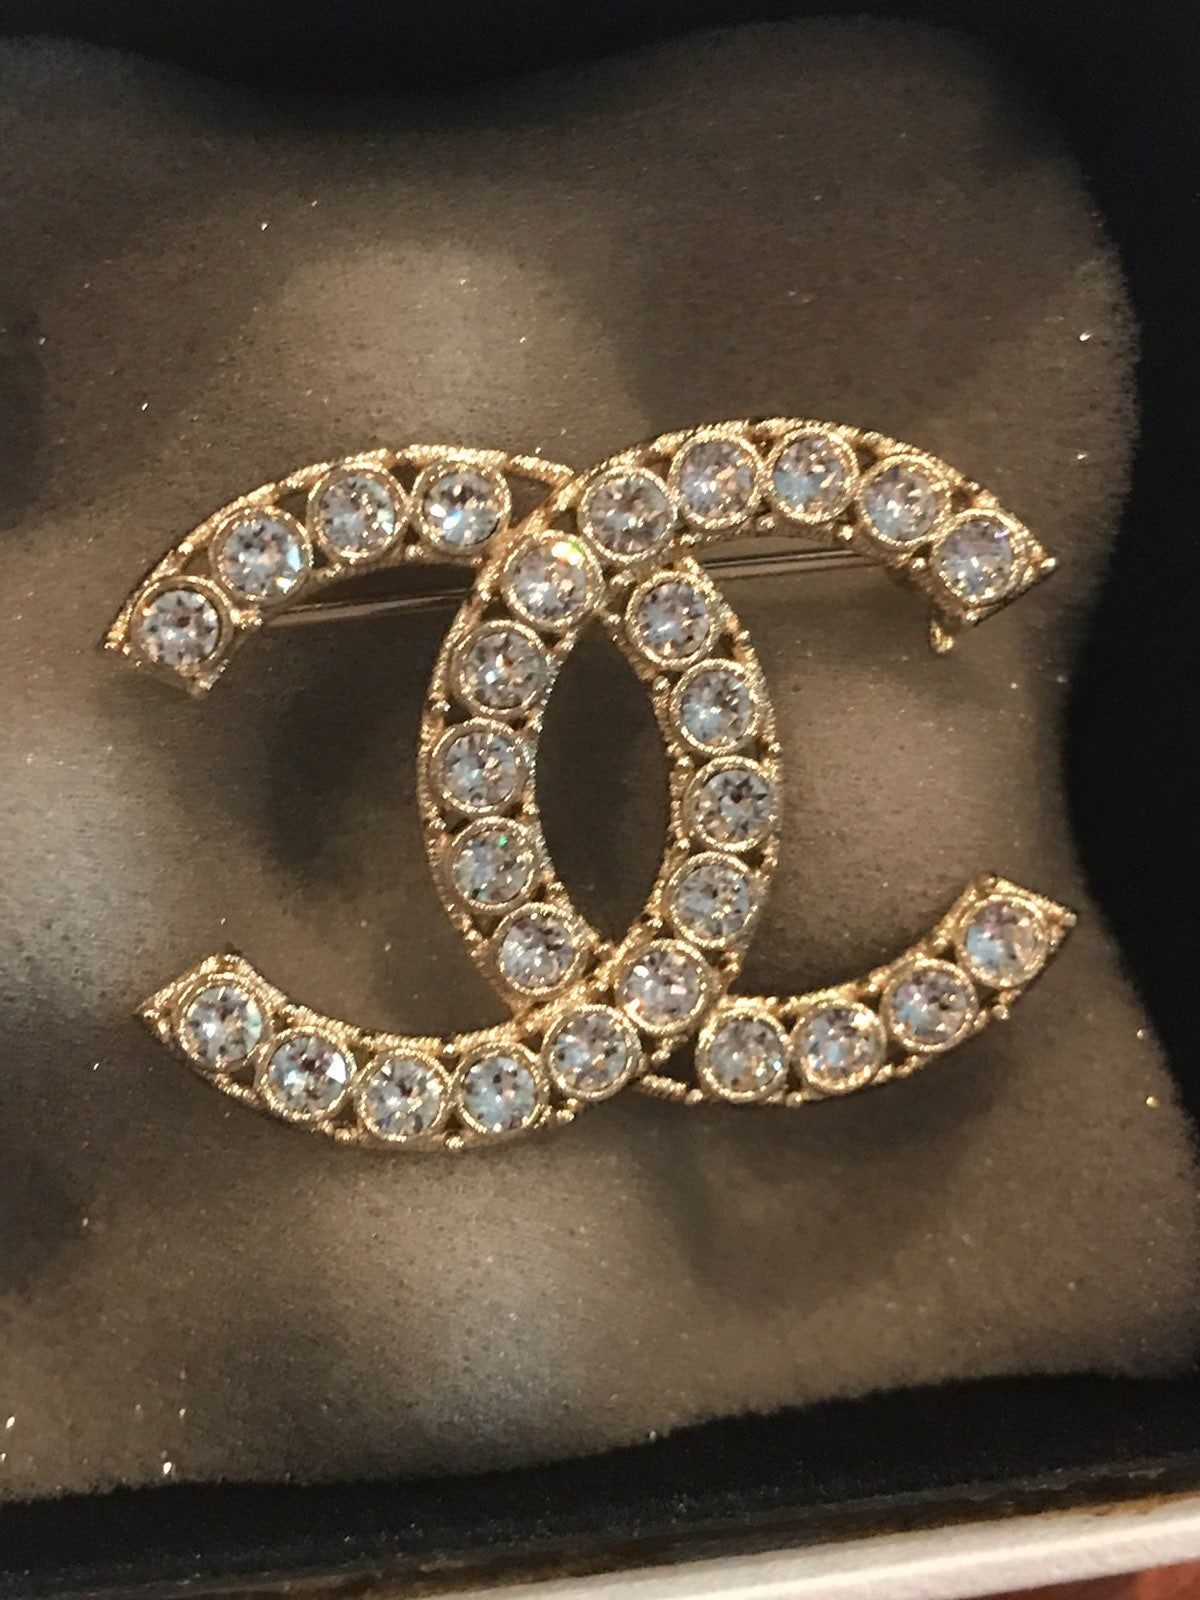 Auth Chanel Gold Plated Cc Logo Brooch The Used Item Is In Excellent Condition Width 1 5 Inches Comes With Box Brooch Chanel Brooch Jewelry